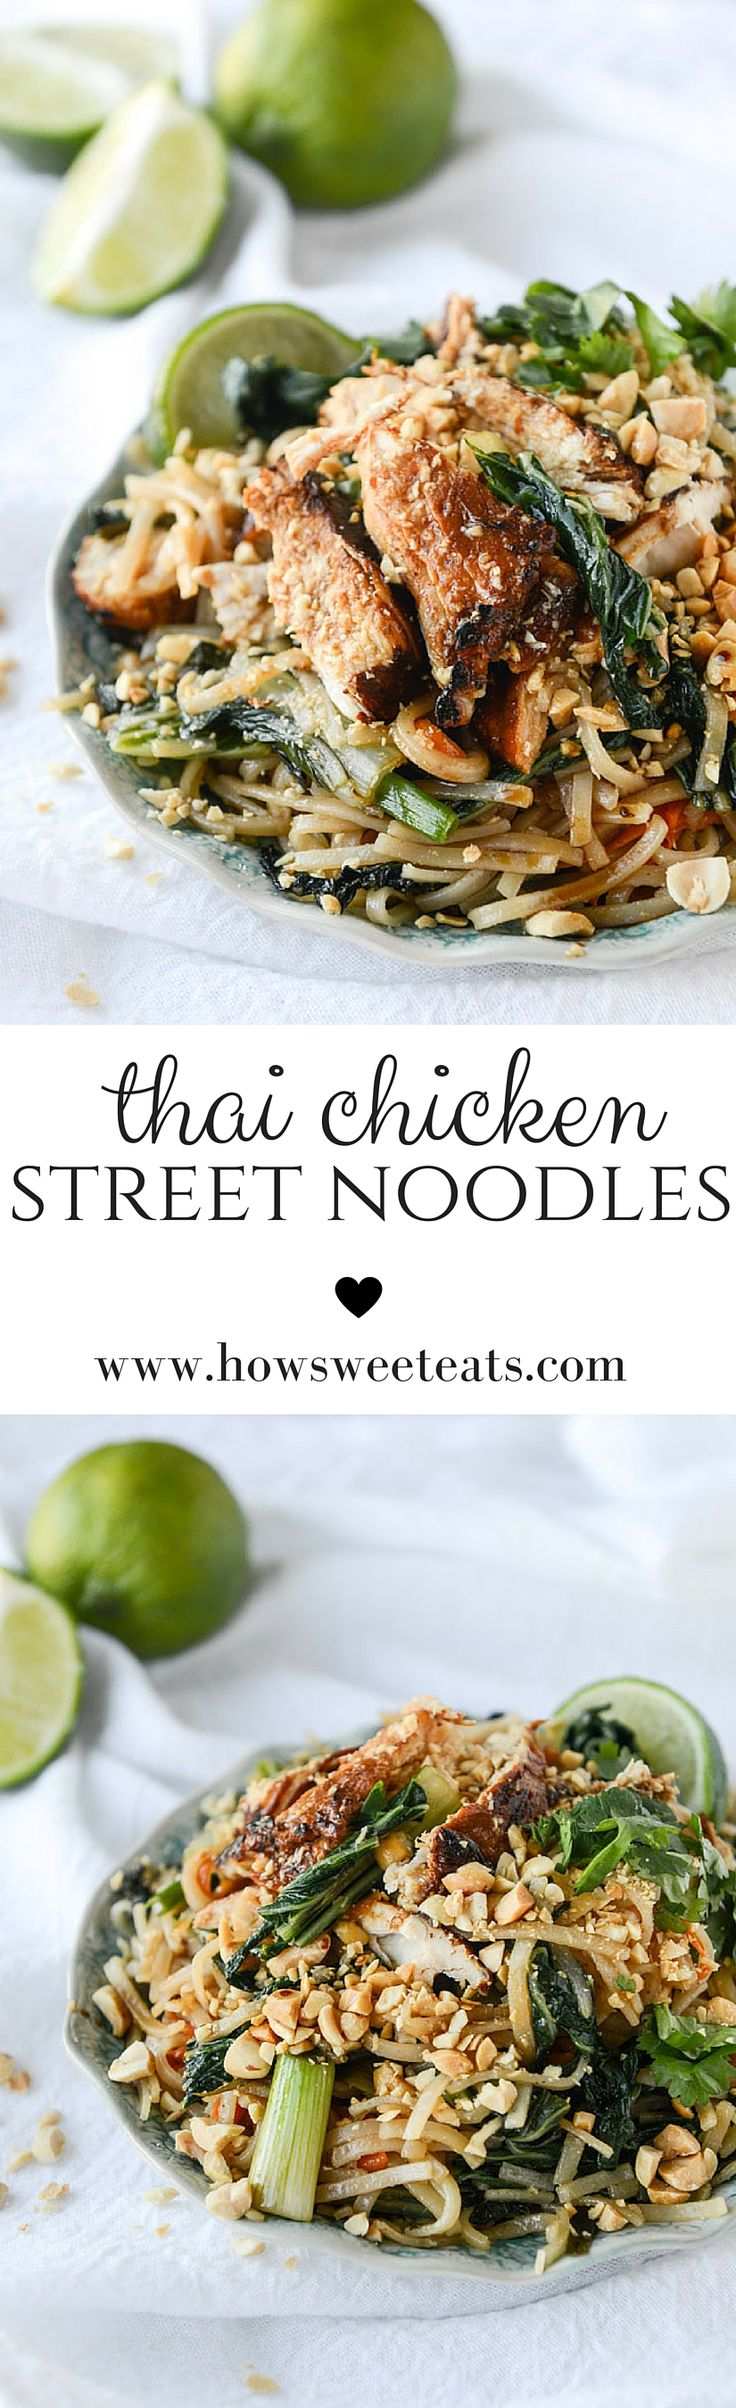 Thai Chicken Street Noodles by @howsweeteats I howsweeteats.com